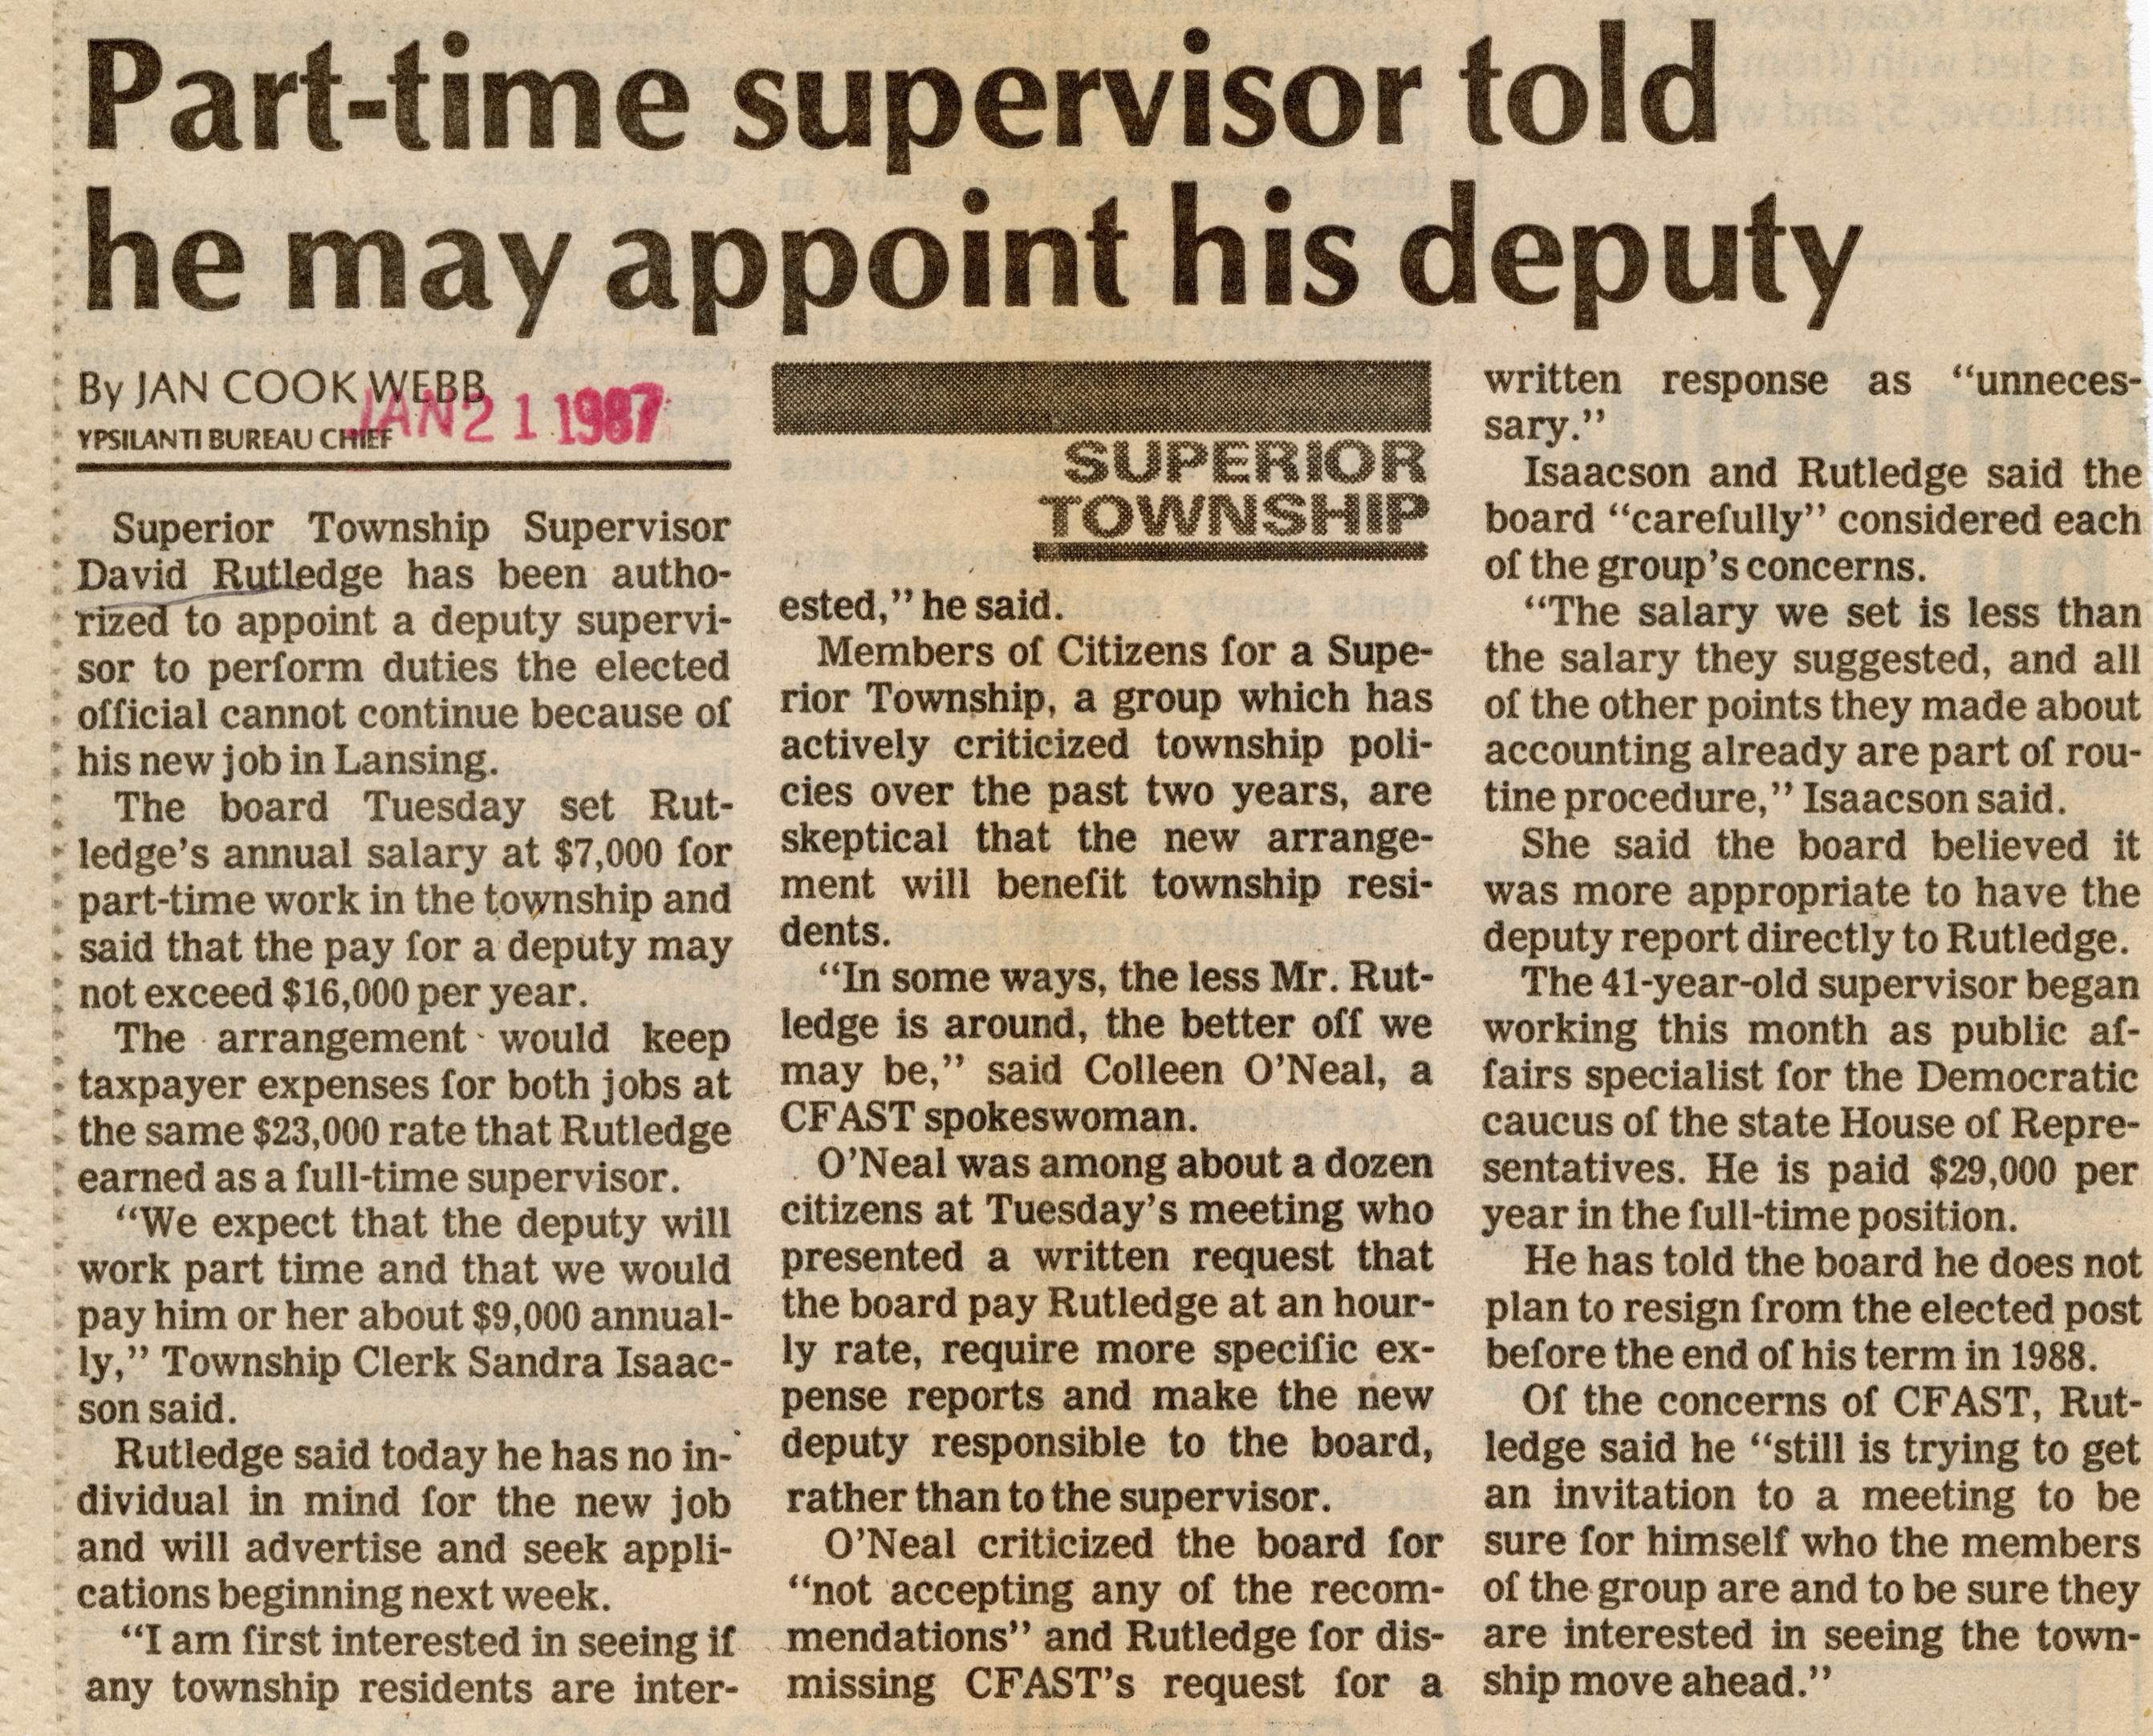 Part-time Supervisor Told He May Appoint His Deputy image